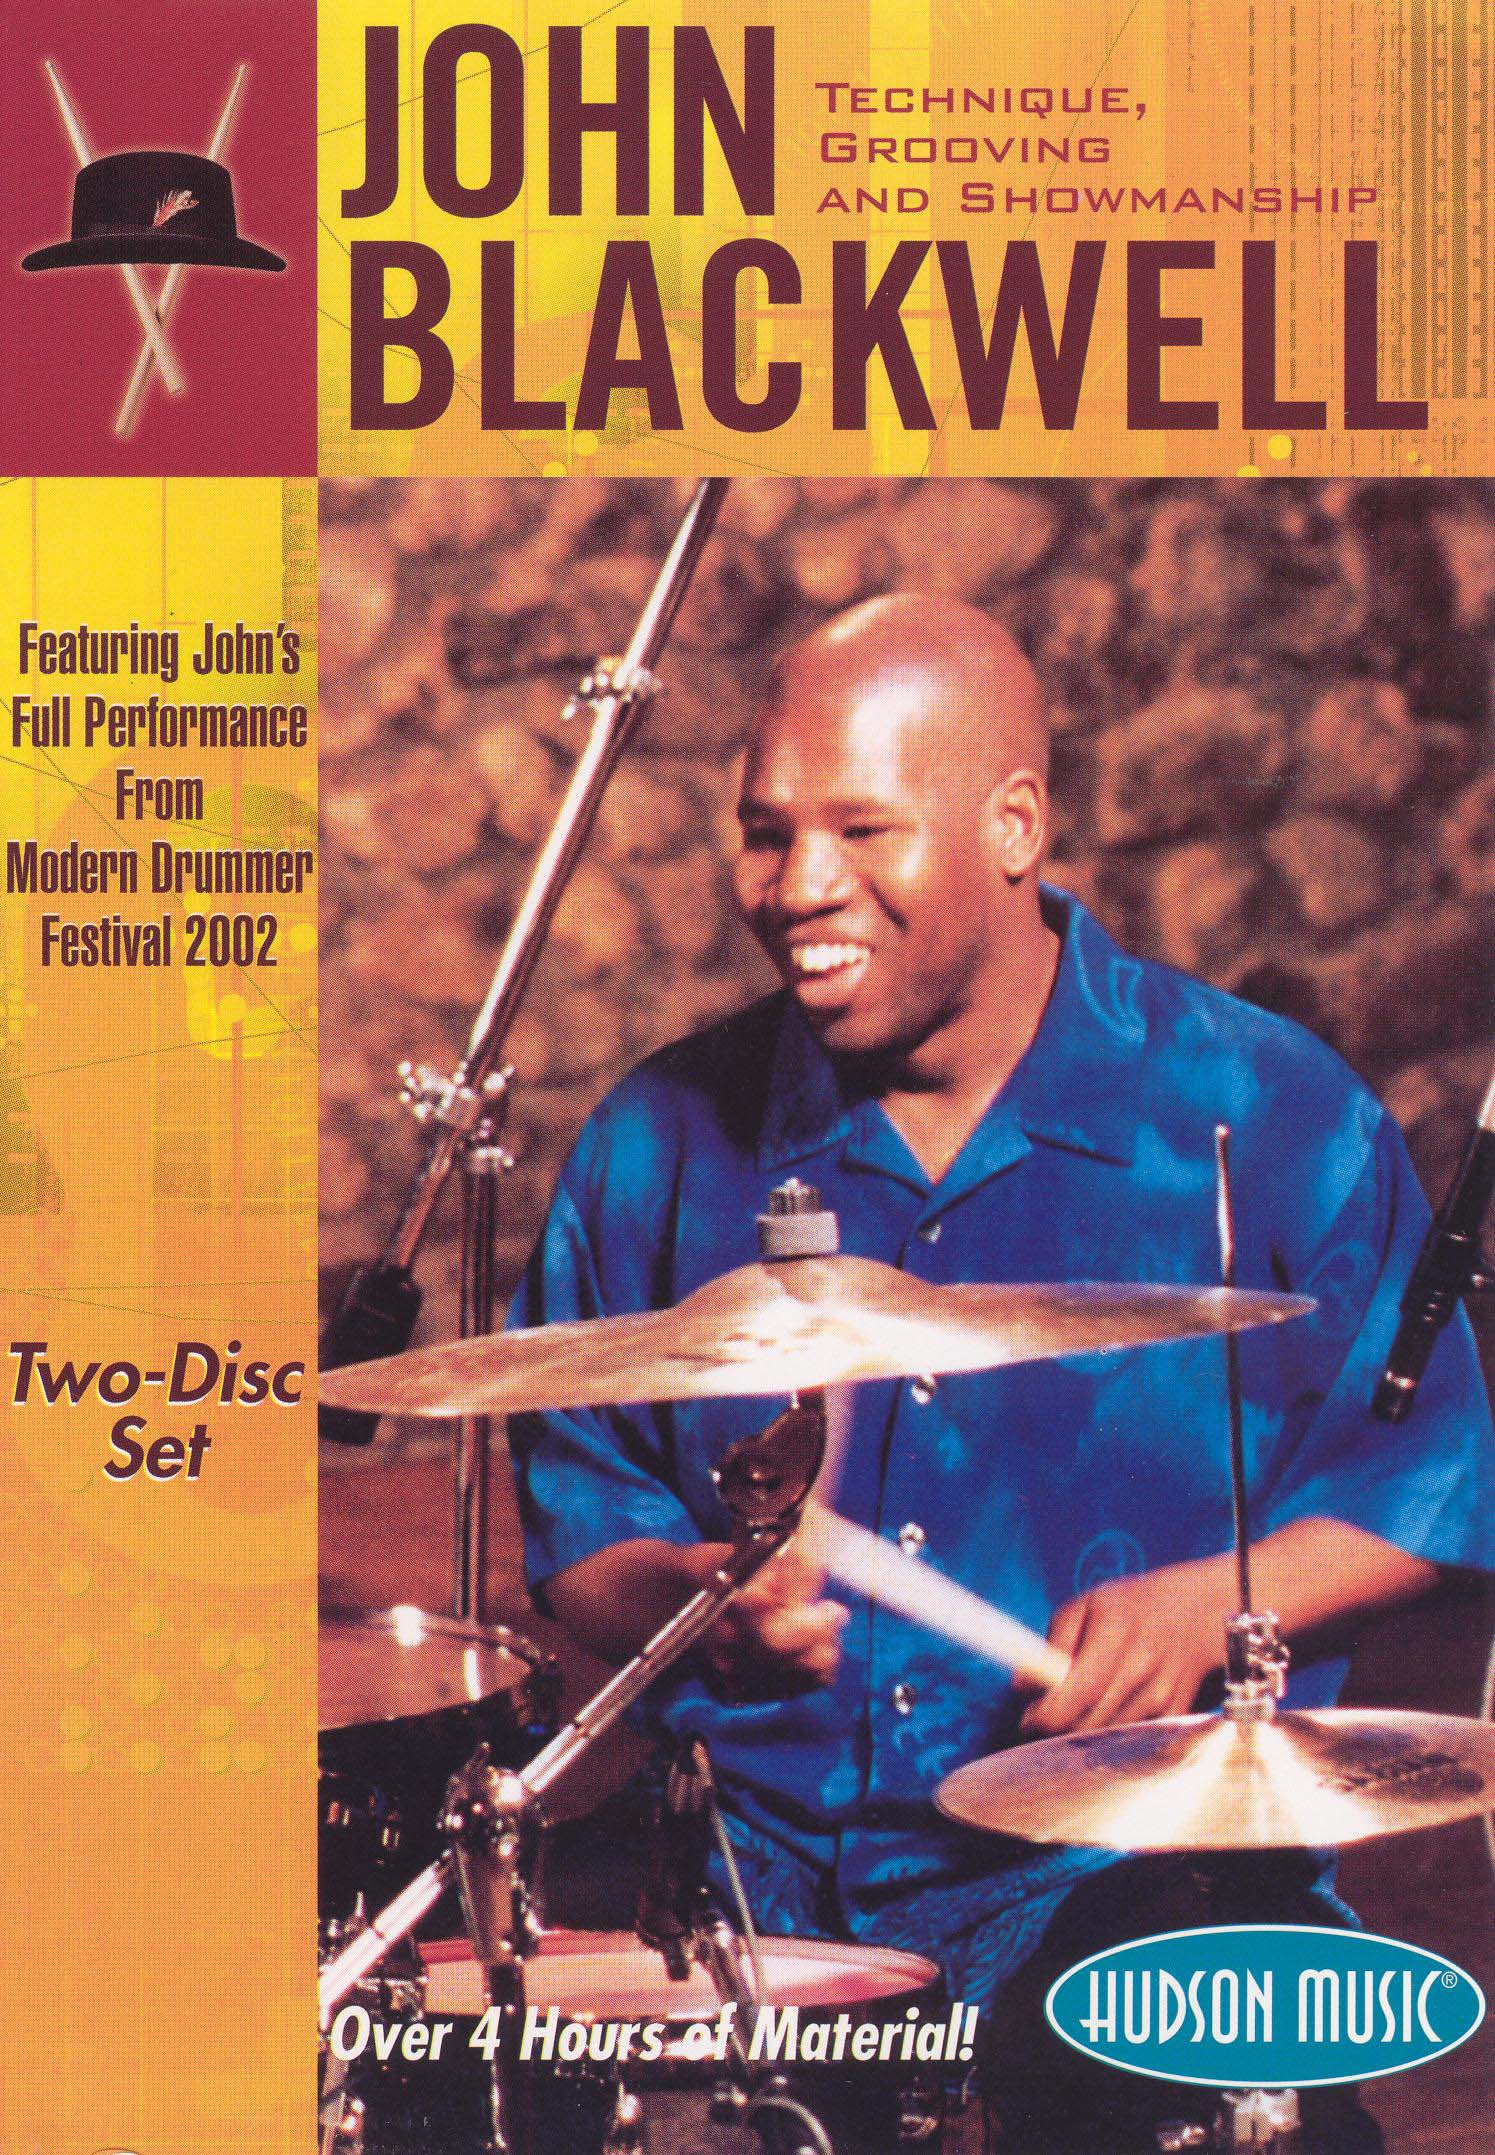 John Blackwell: Technique Grooving and Showmanship